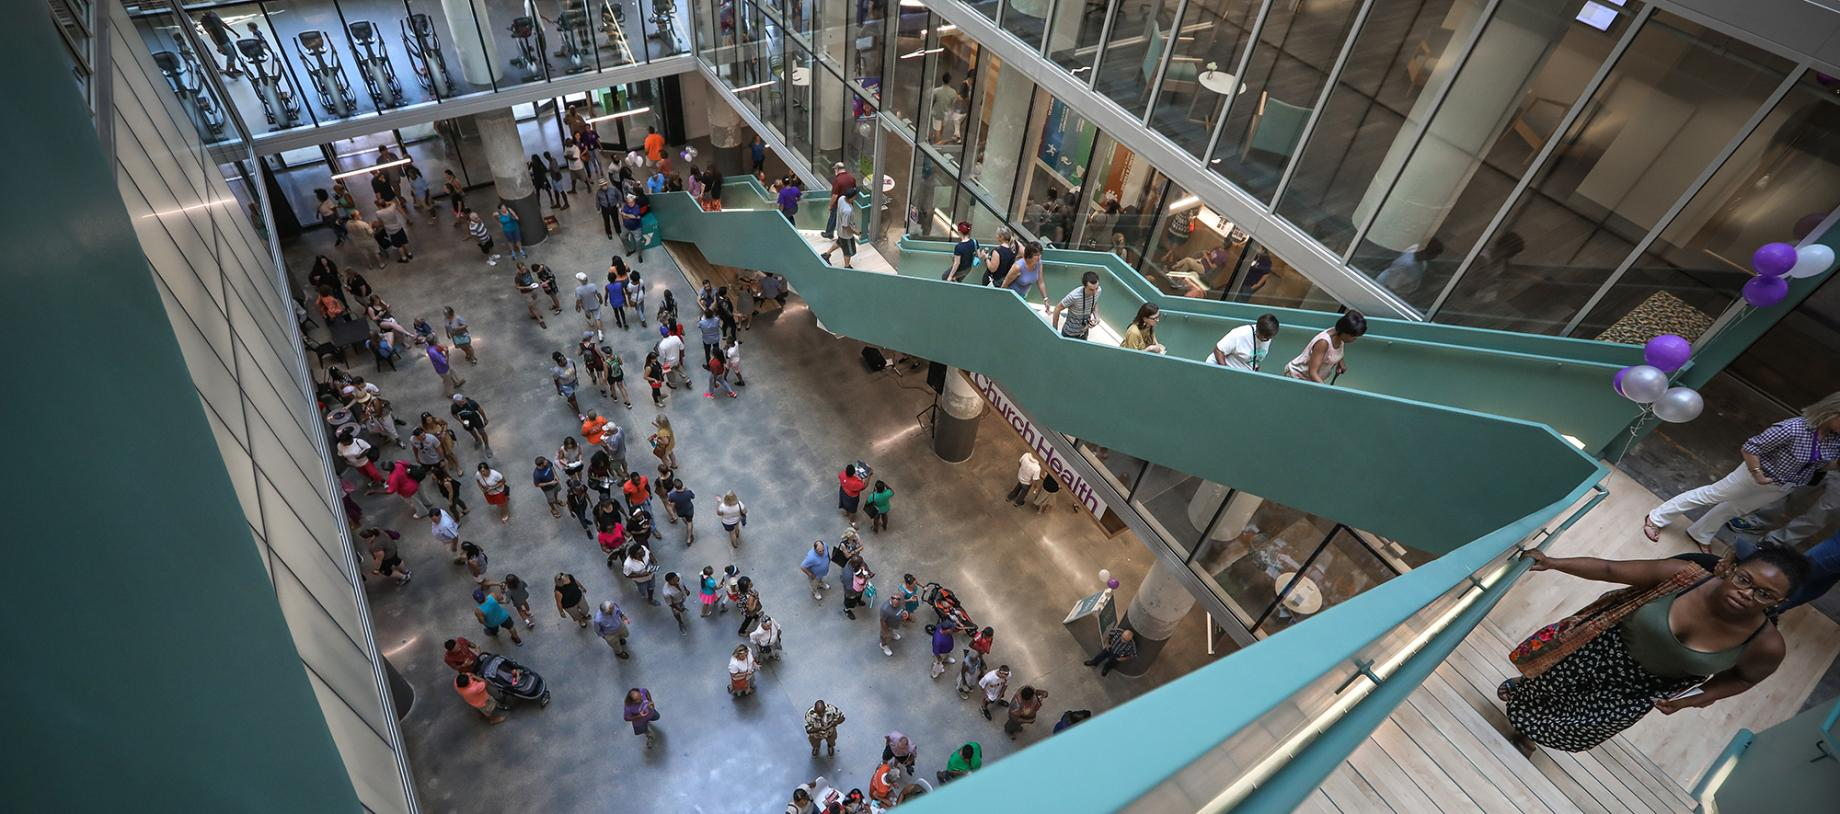 Crosstown_Concourse_2018_Charter_LooneyRicksKiss